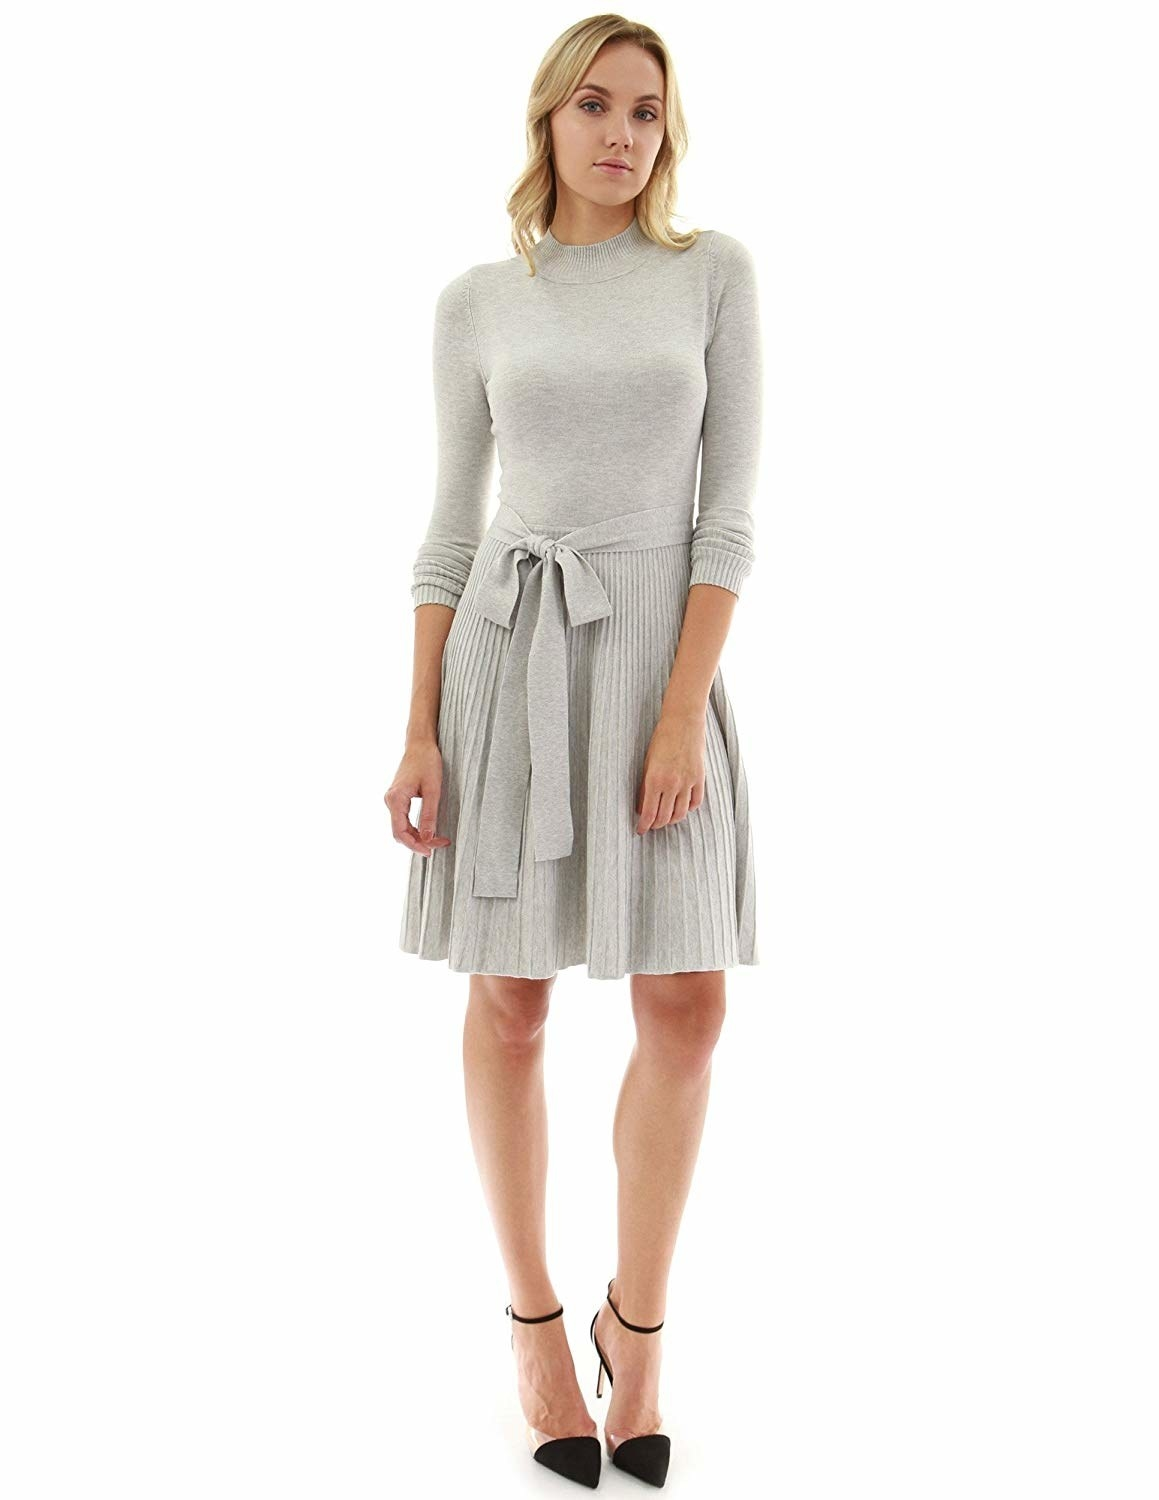 ea9ecabae844b A flared sweater dress with a bow-tie accent for wearing on days you just  wanna soak in a million compliments about your excellent taste in fashion.